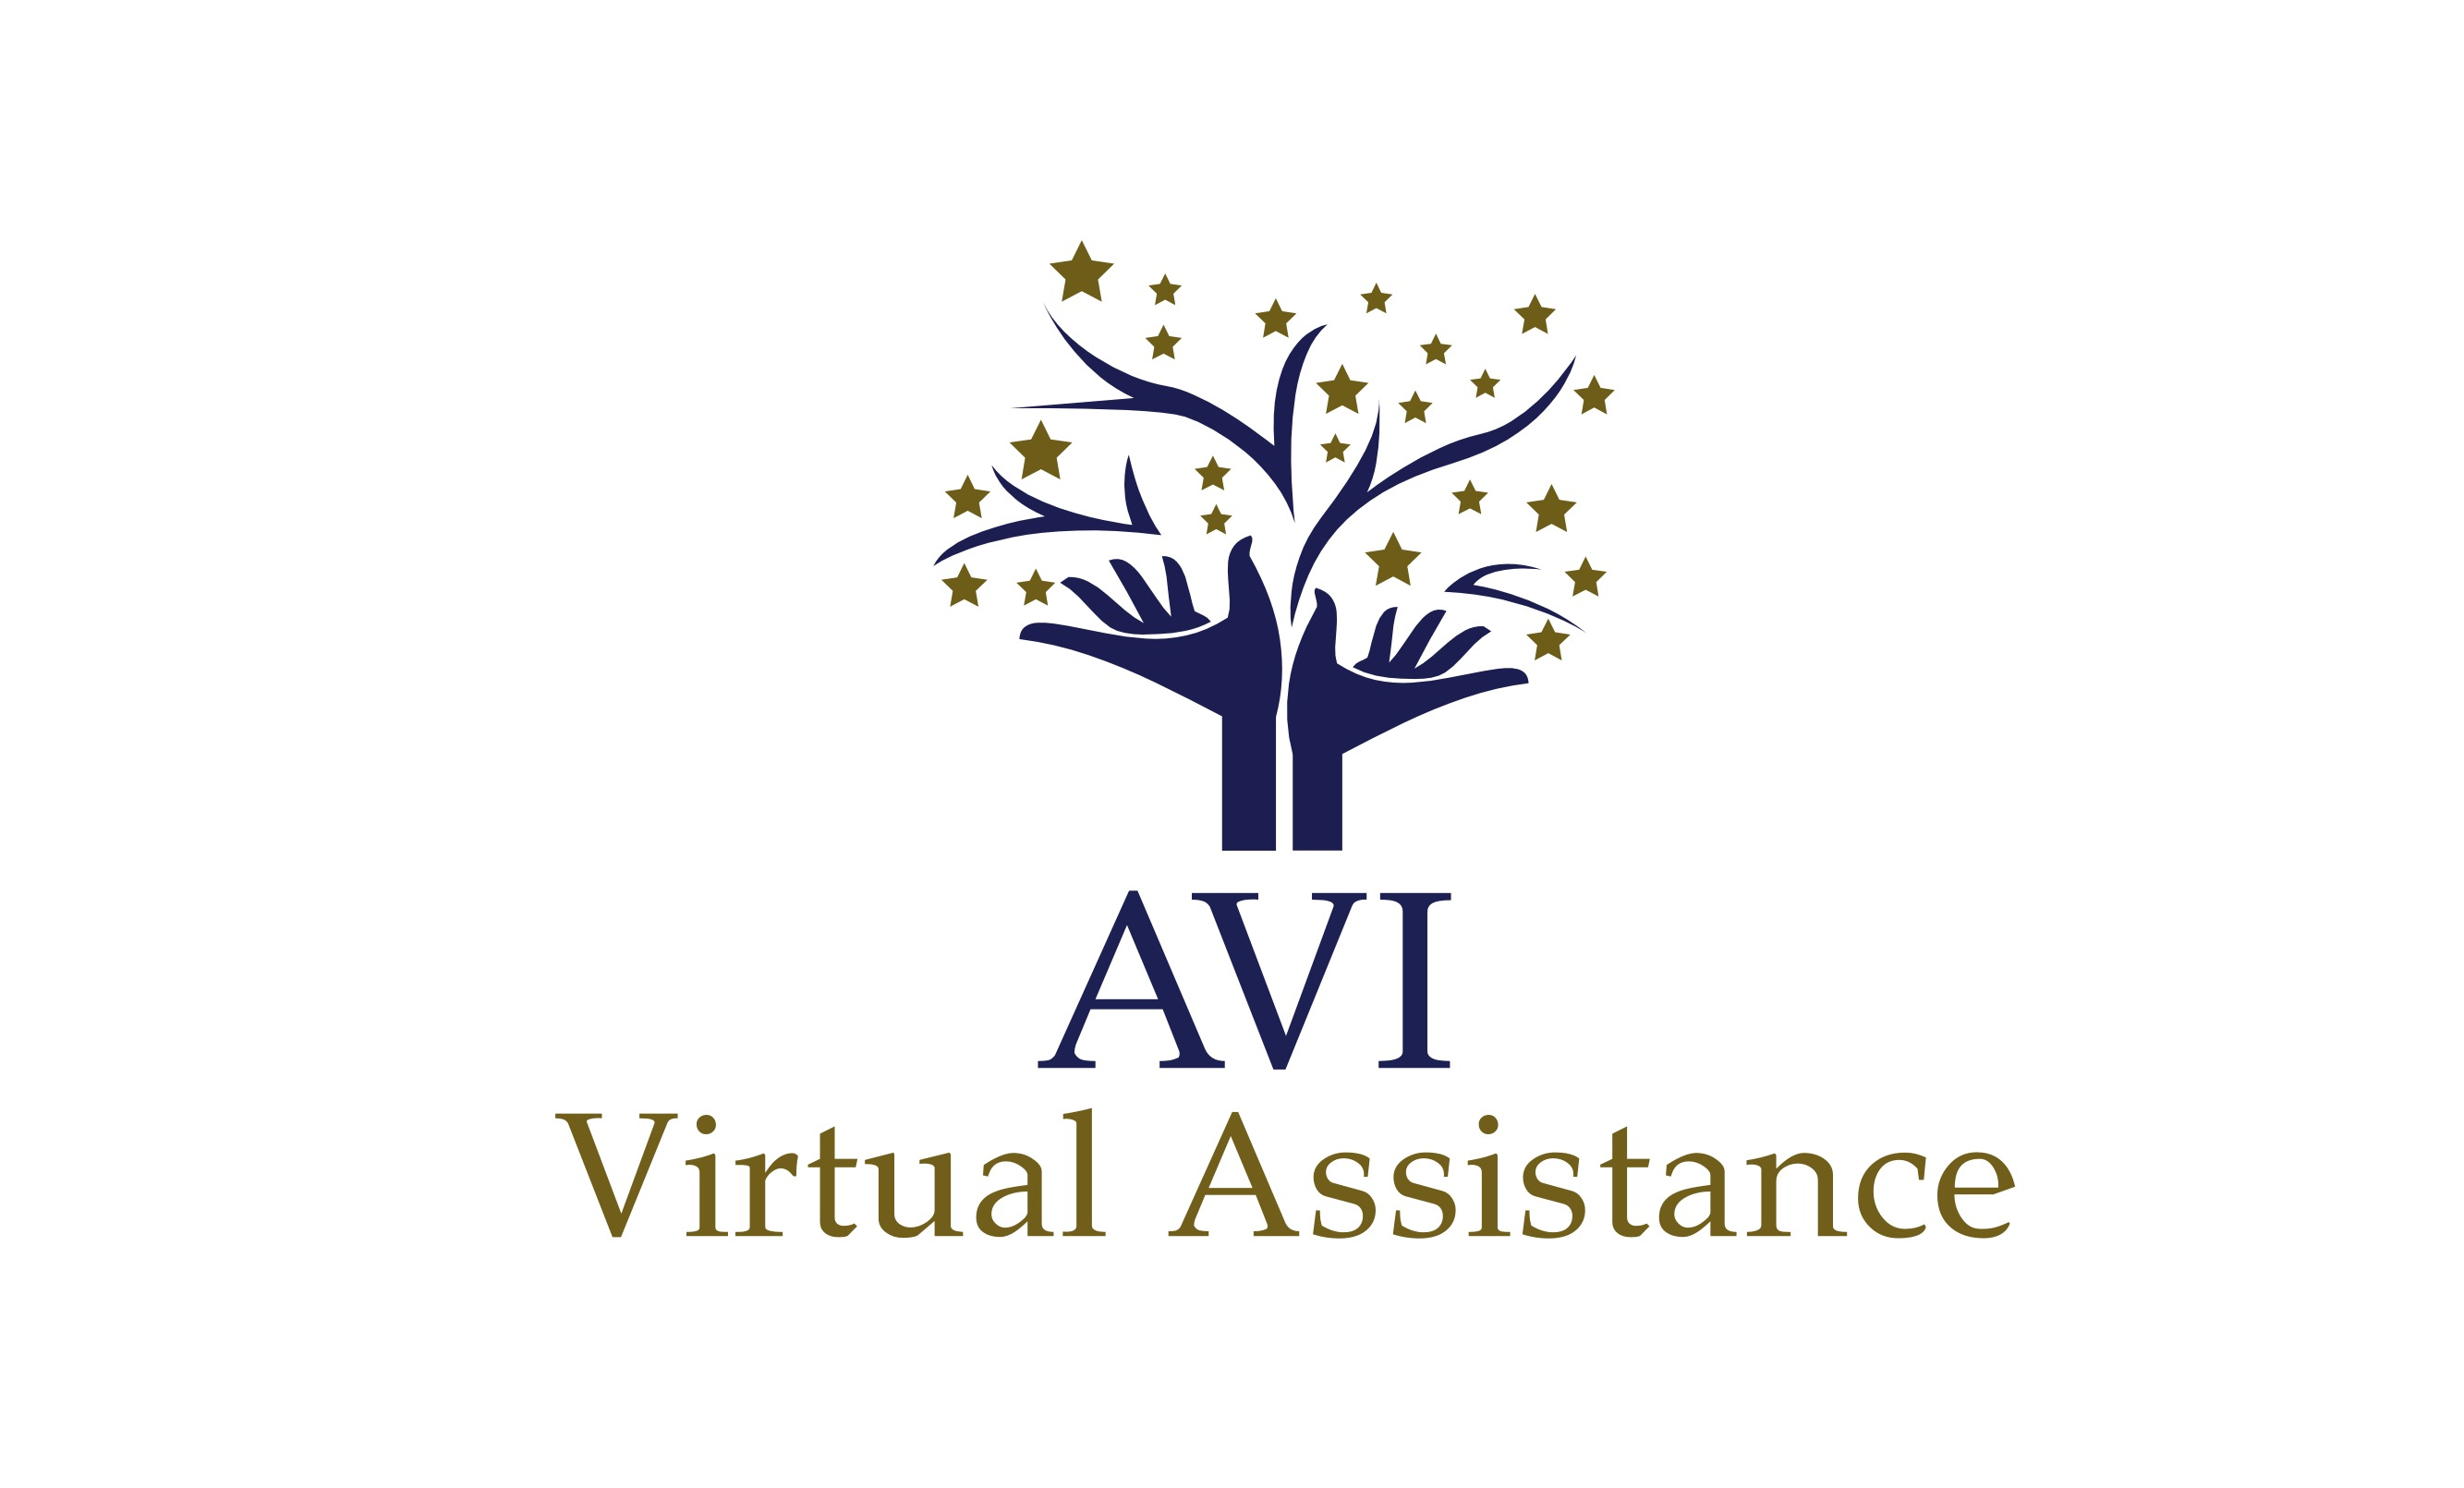 AVI Virtual Assistance